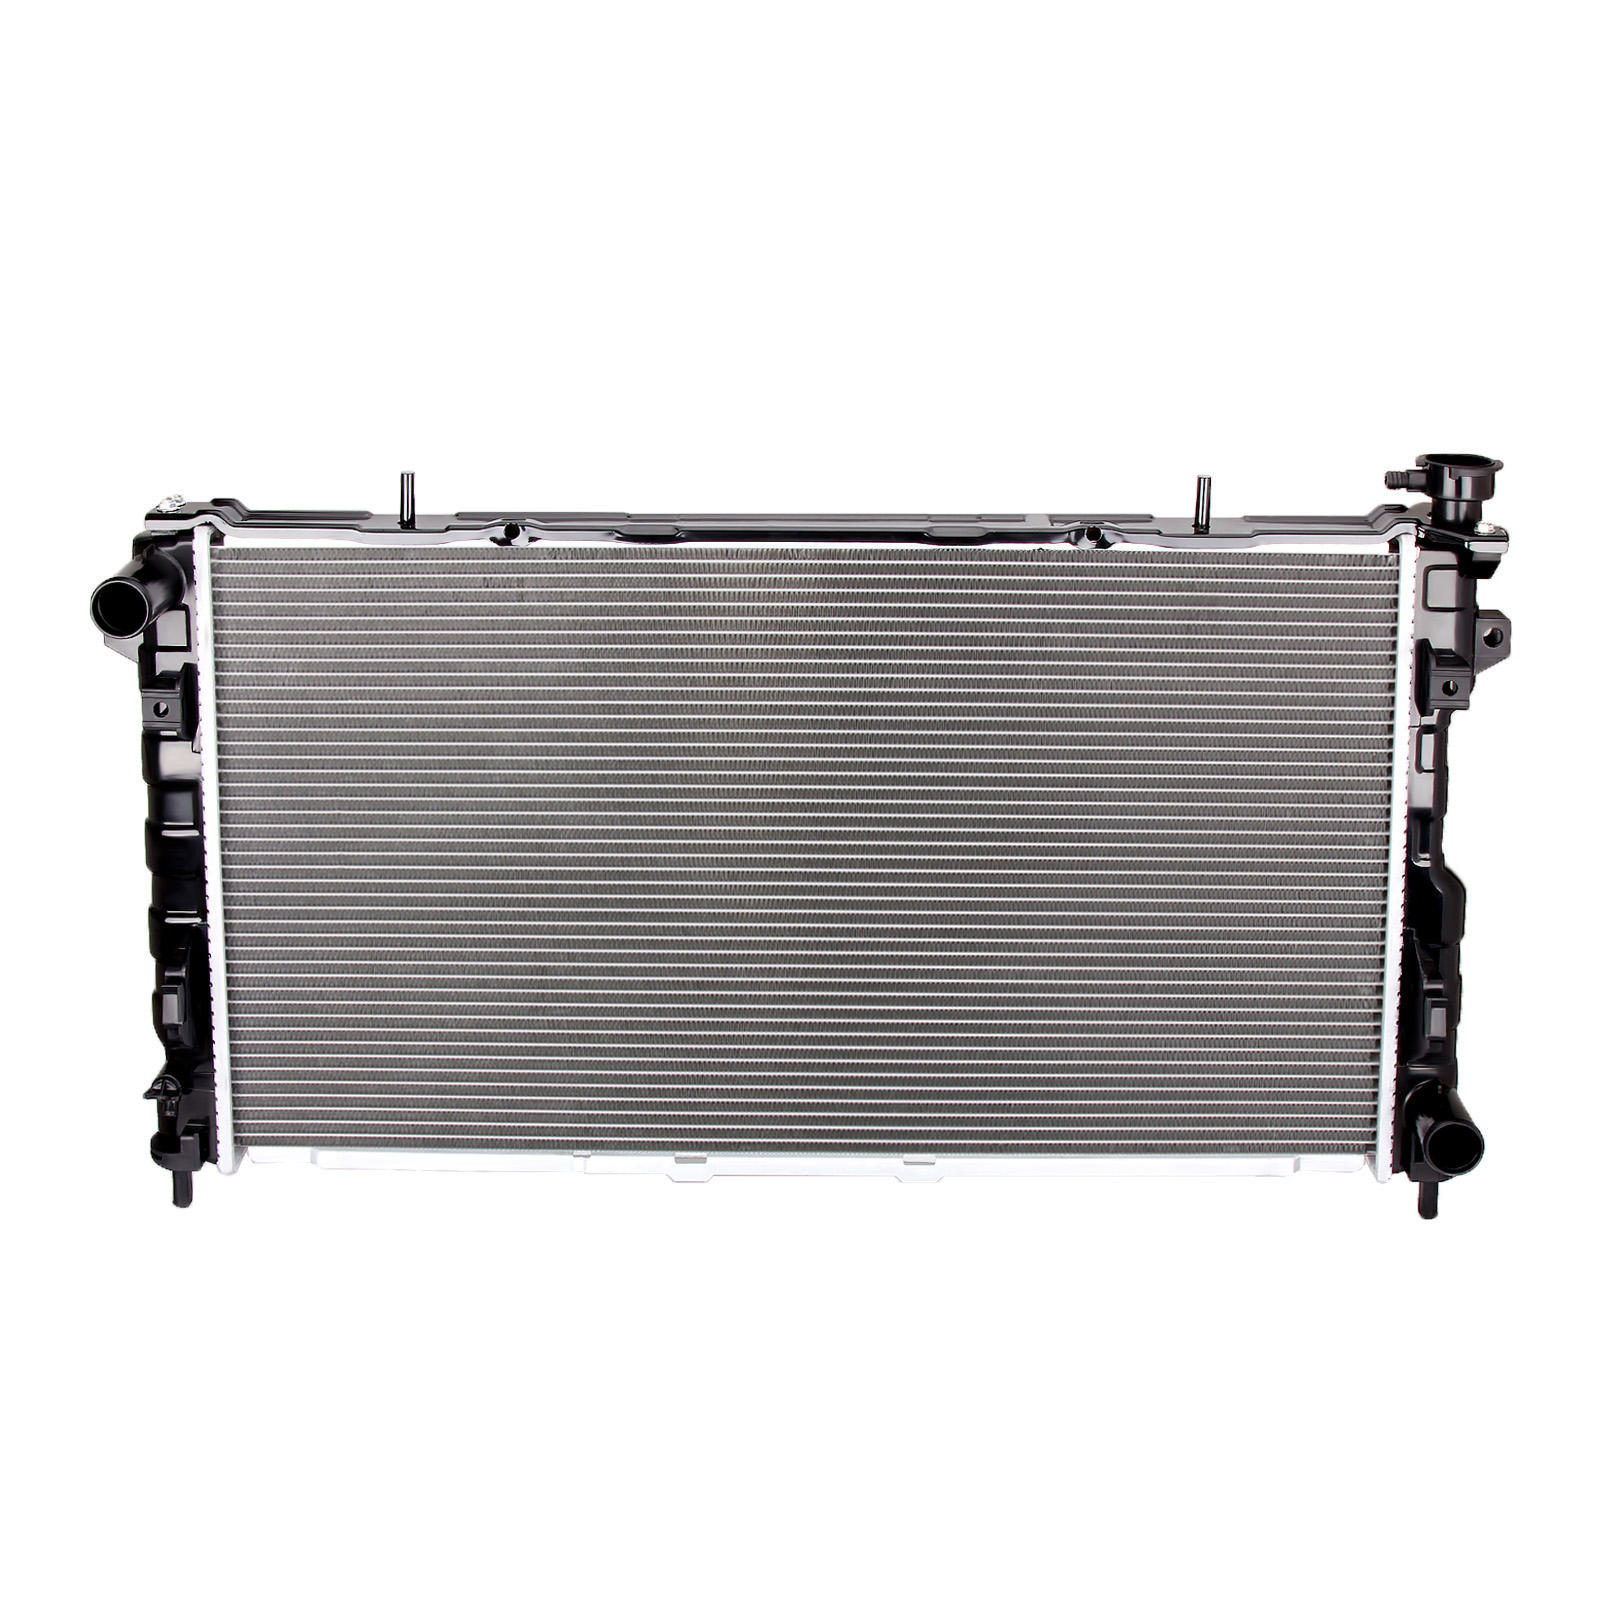 2795 Radiator For Chrysler Town Country Dodge Grand V6 3.3L 3.8L 2005-2007 MT